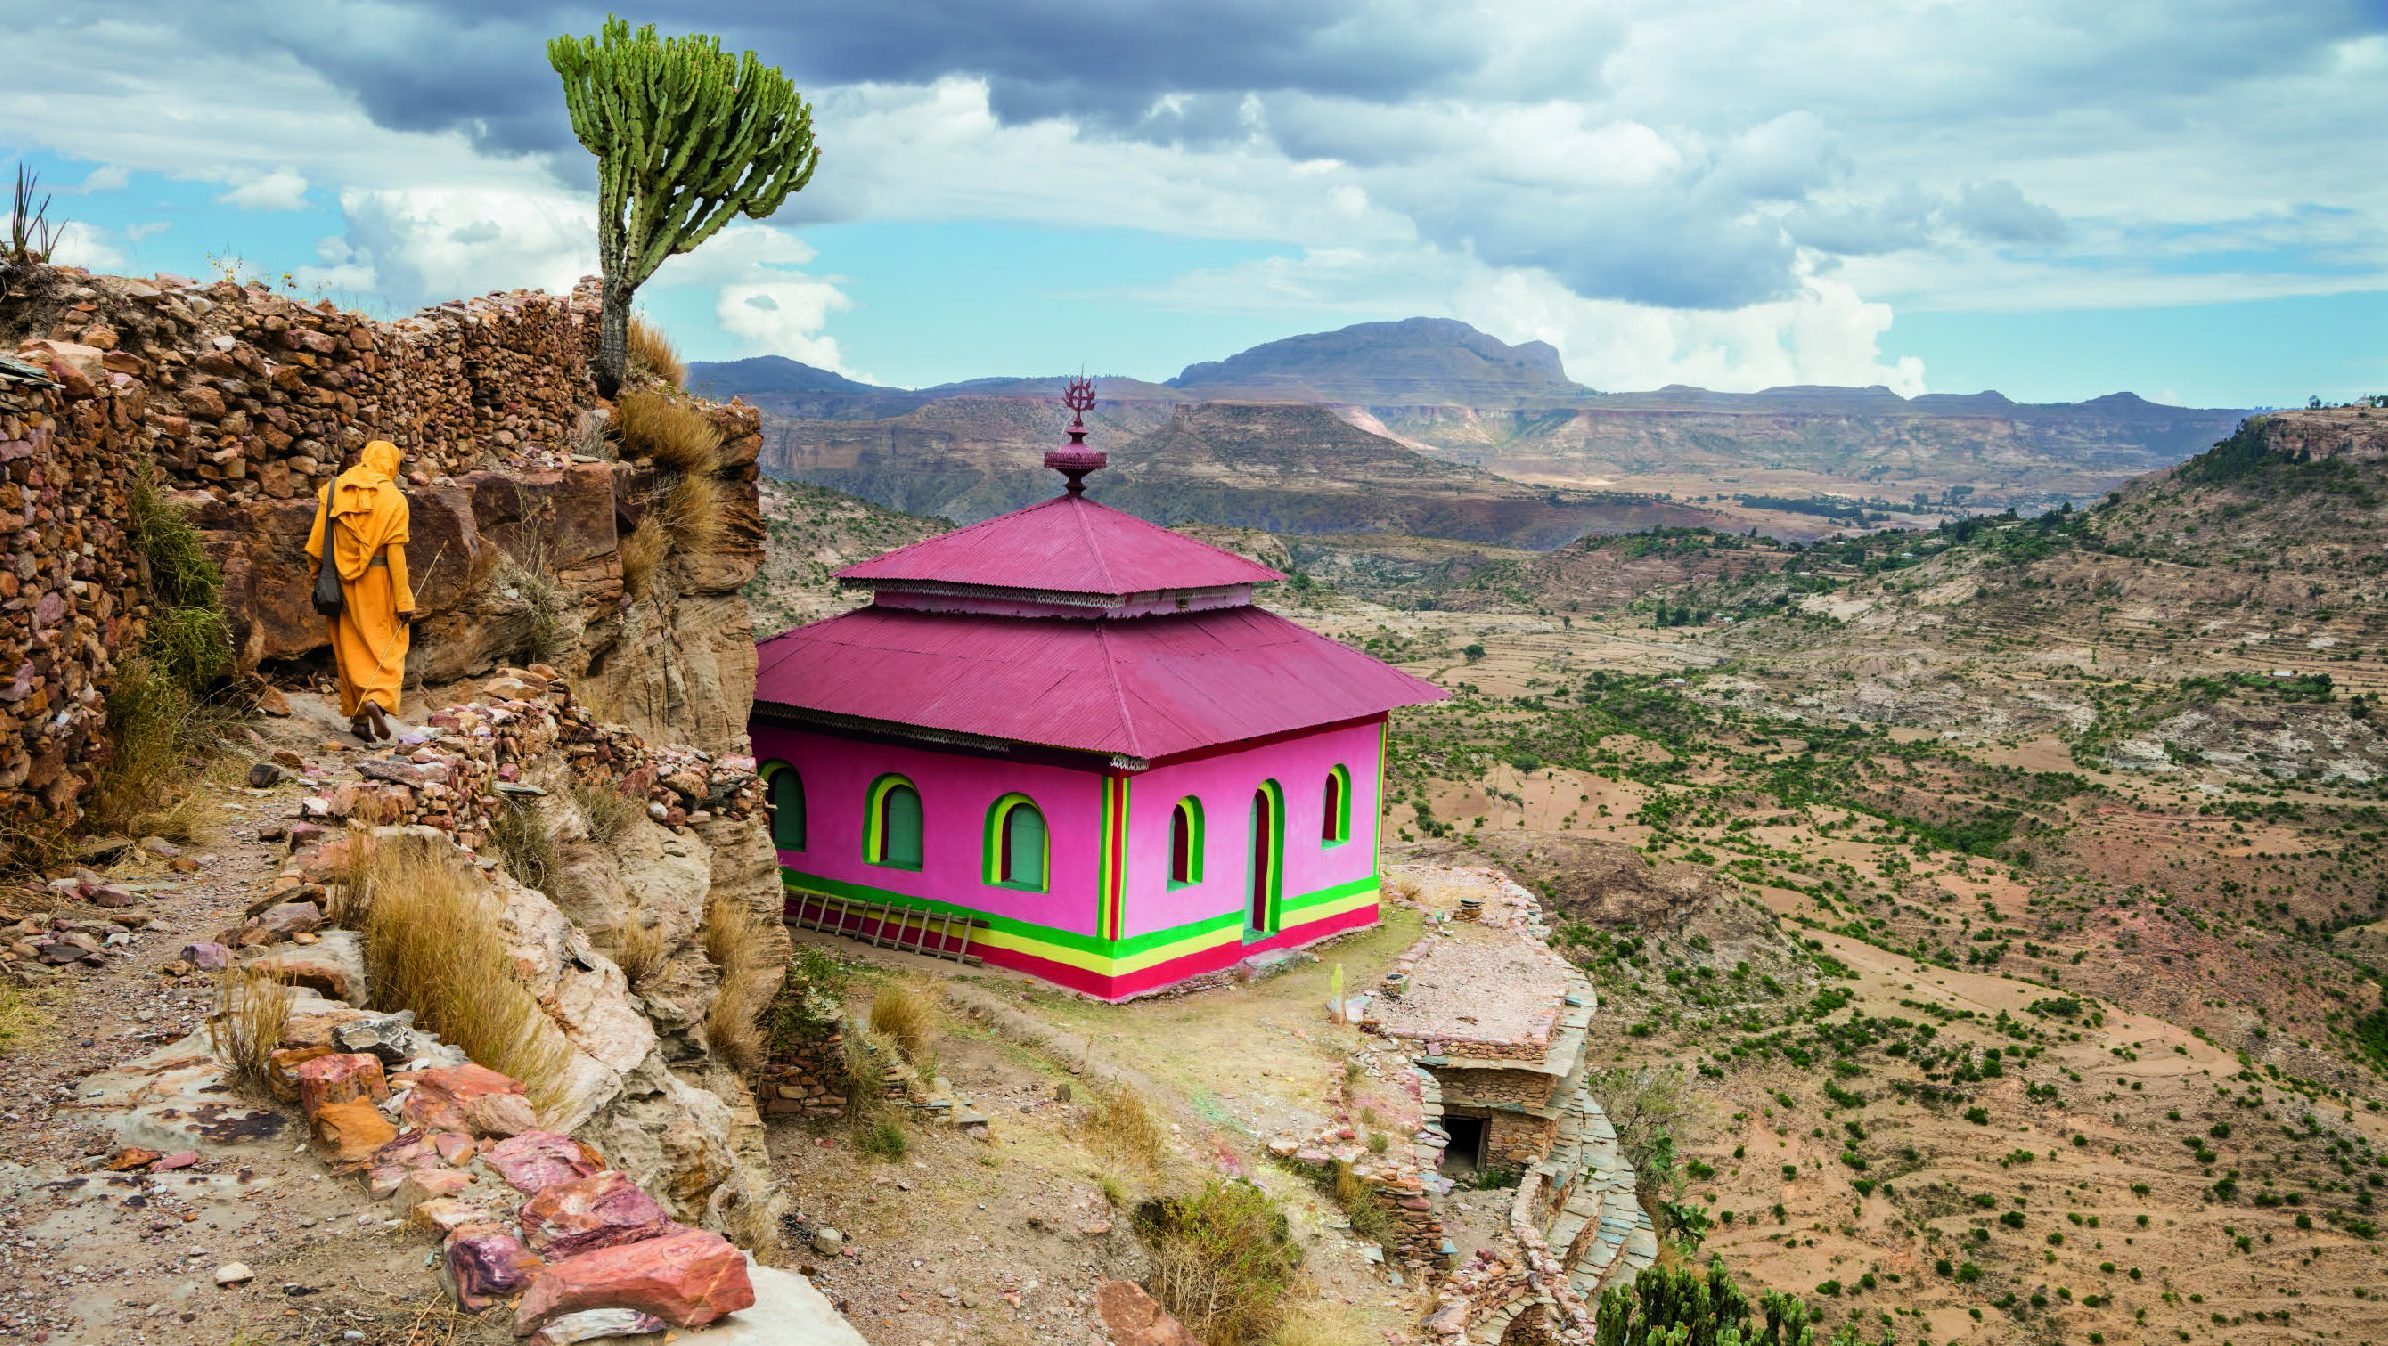 This small, modern church is built in front of the grotto where saint Aragawi is said to have vanished.